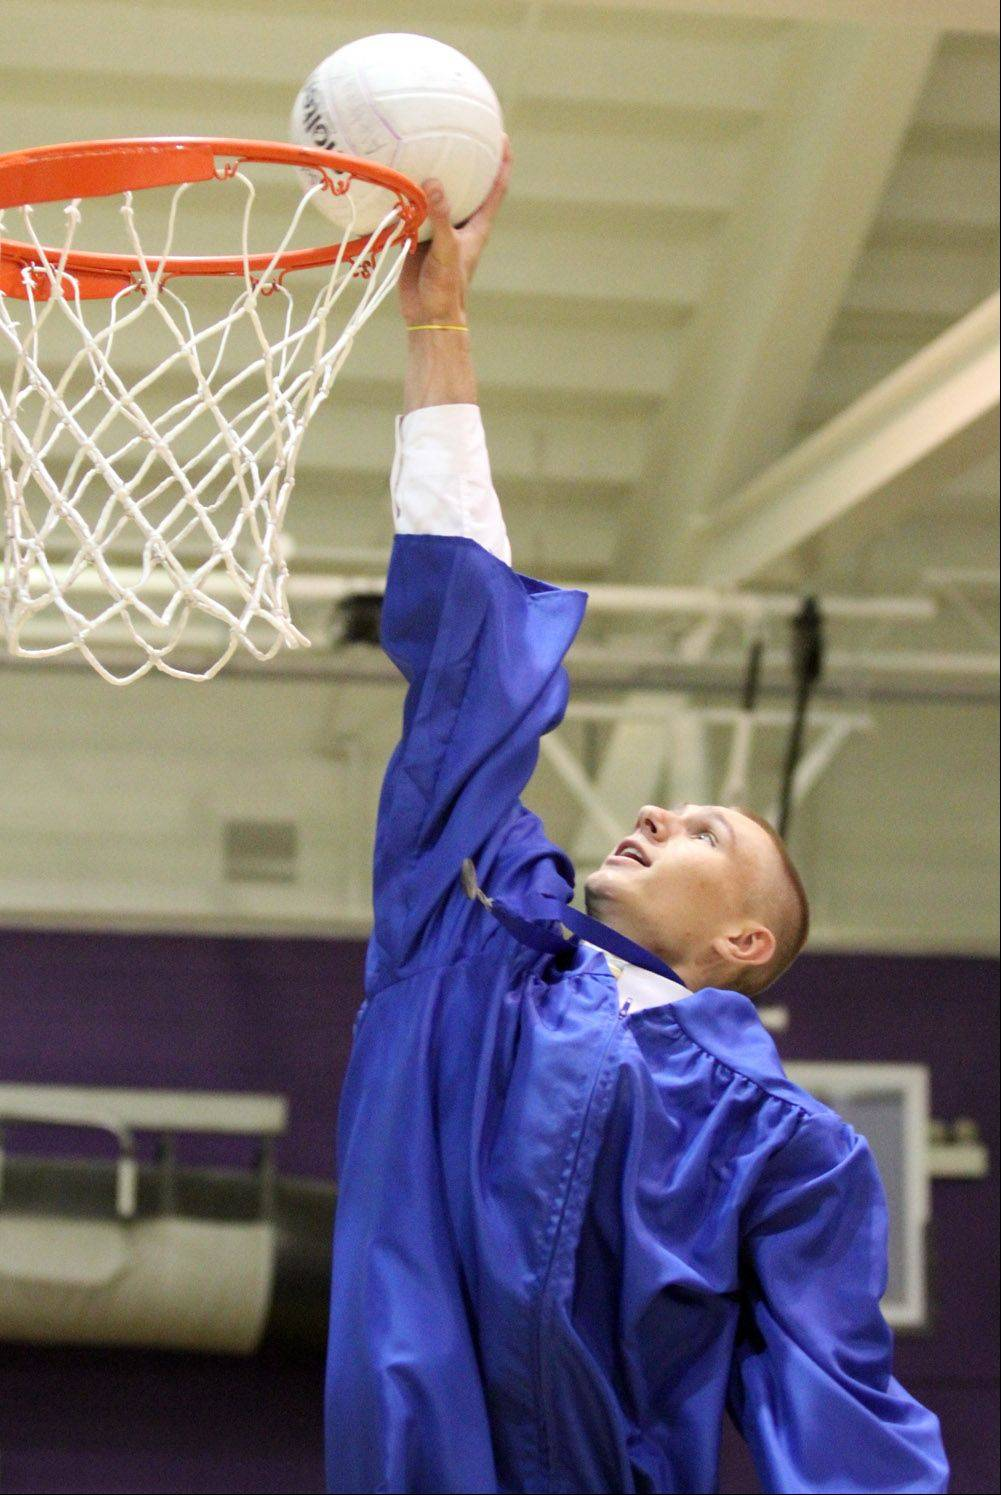 Mitch Munda dunks a volleyball in Welsh-Ryan Arena practice gym while preparing for Warren Township High School graduation ceremony at Northwestern University's Welsh-Ryan Arena in Evanston on Saturday, May 26.